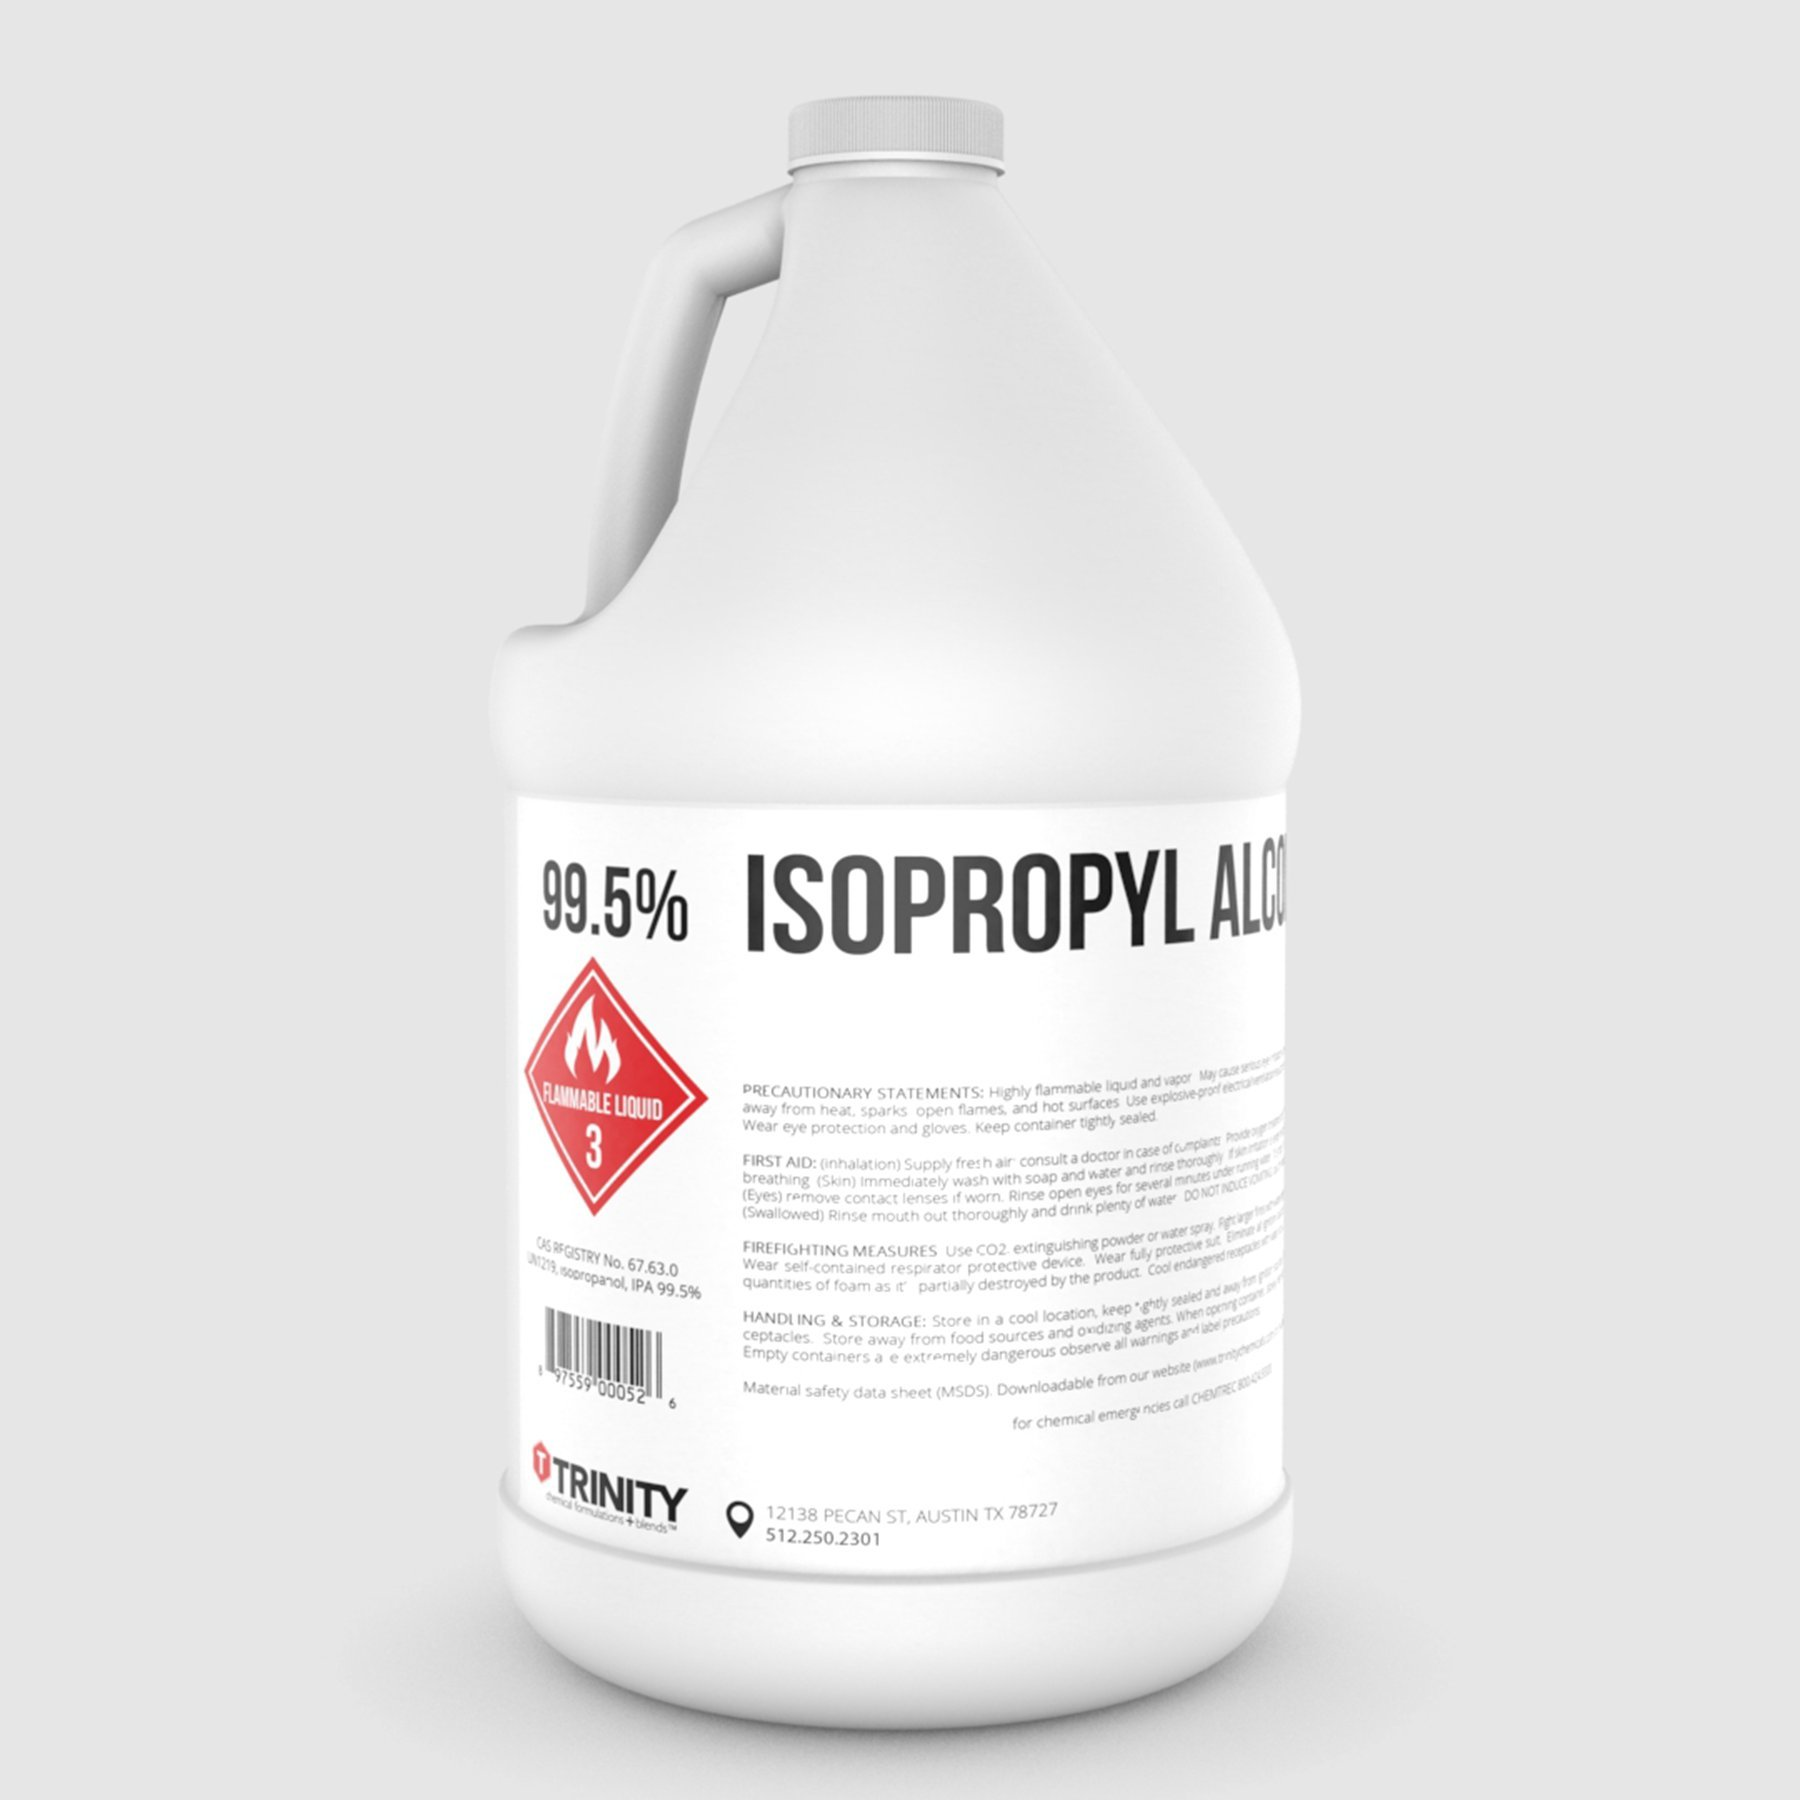 Isopropyl Alcohol 99.5% aka Isopropanol Alcohol 99.5% - A Laboratory-Grade Superior Solvent + Liquid Cleaner | 1 Gallon (3785 mL)